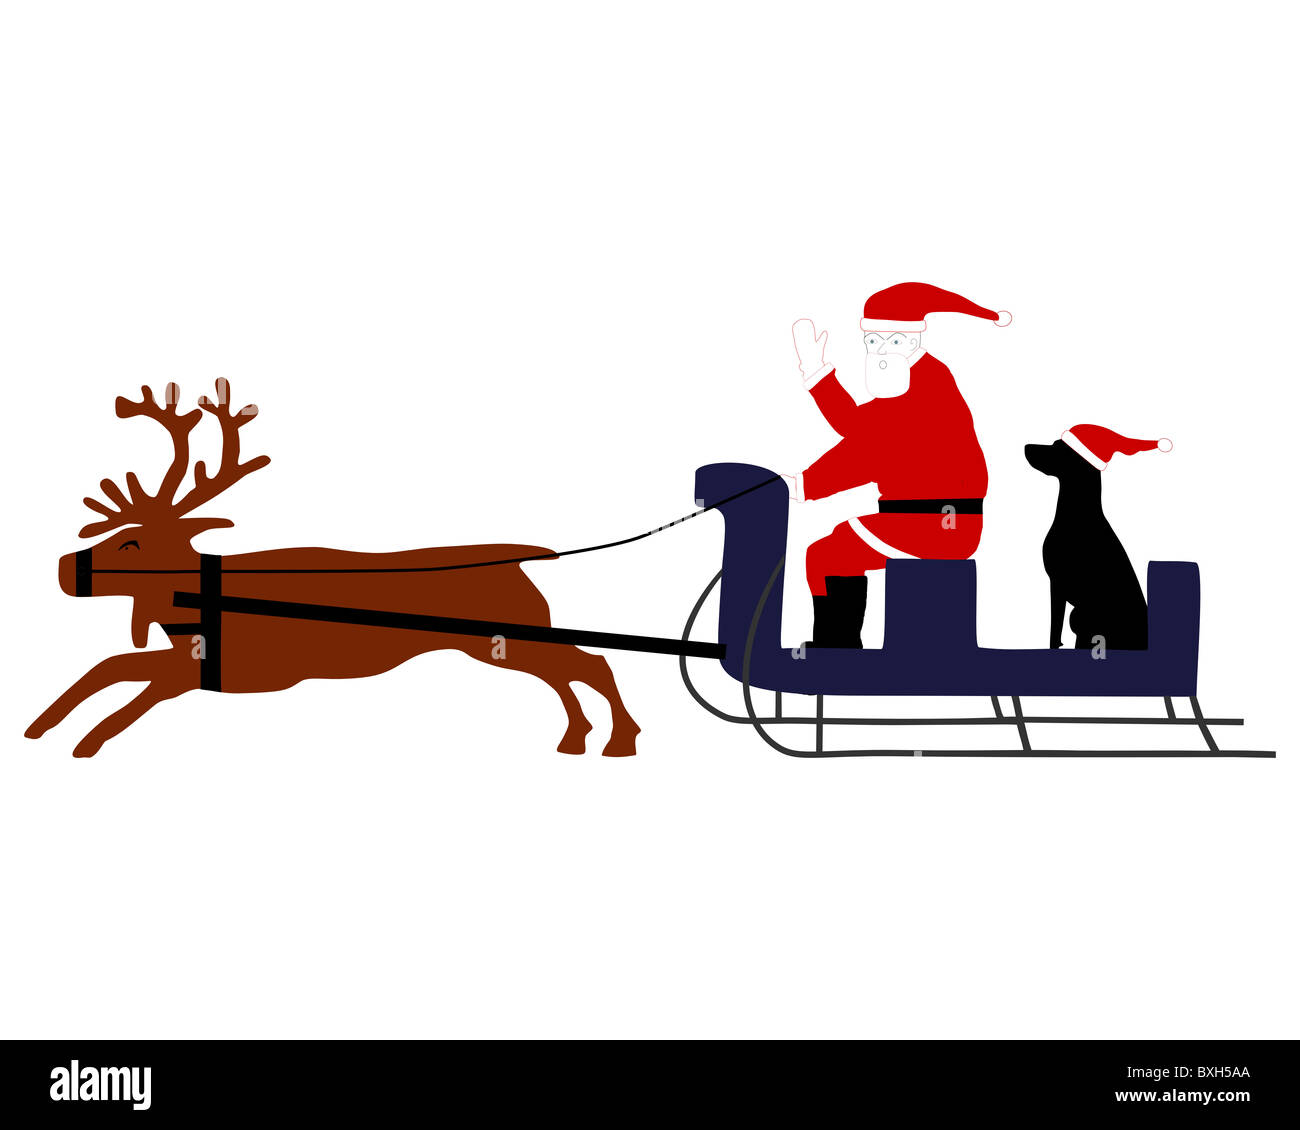 reindeer sleigh cut out stock images pictures page 3 alamy